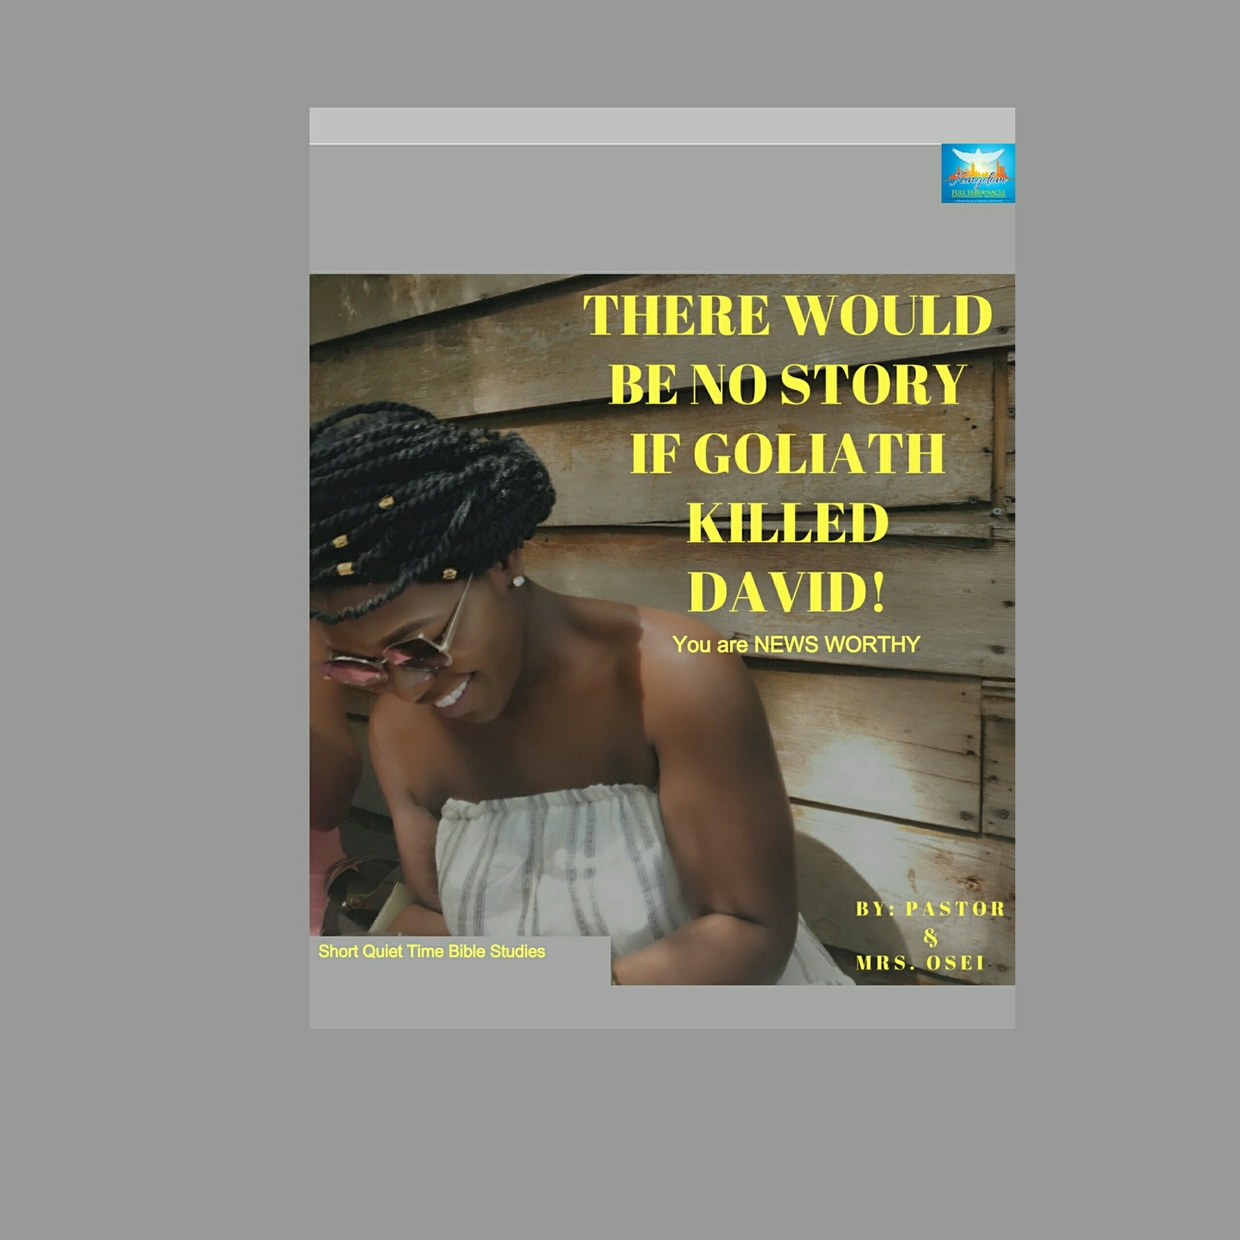 There would be no story if Goliath killed David